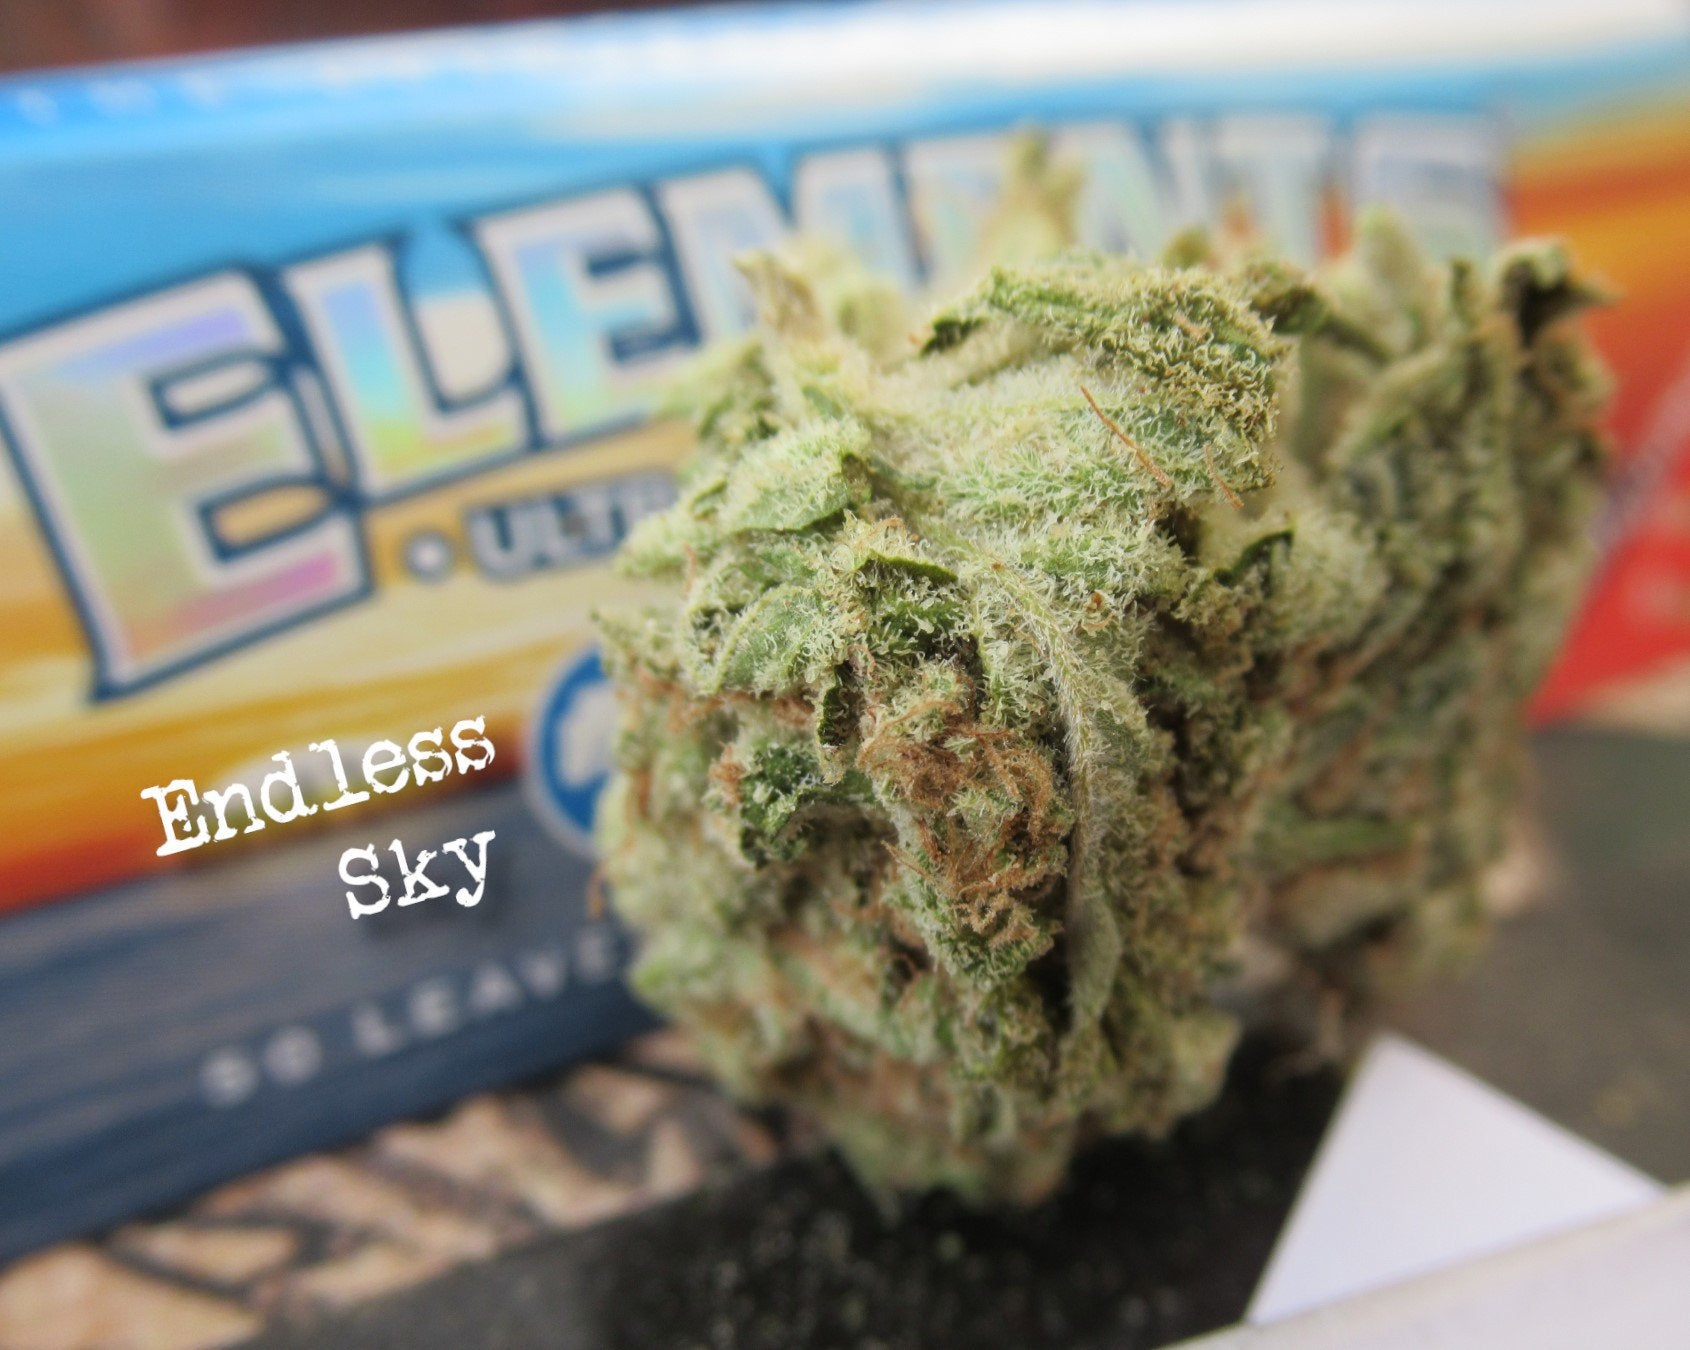 ENDLESS SKY 80/20 Indica Dominant Night Cap Spliff with Elements Rice Paper - Solid Mind and Body Relaxation